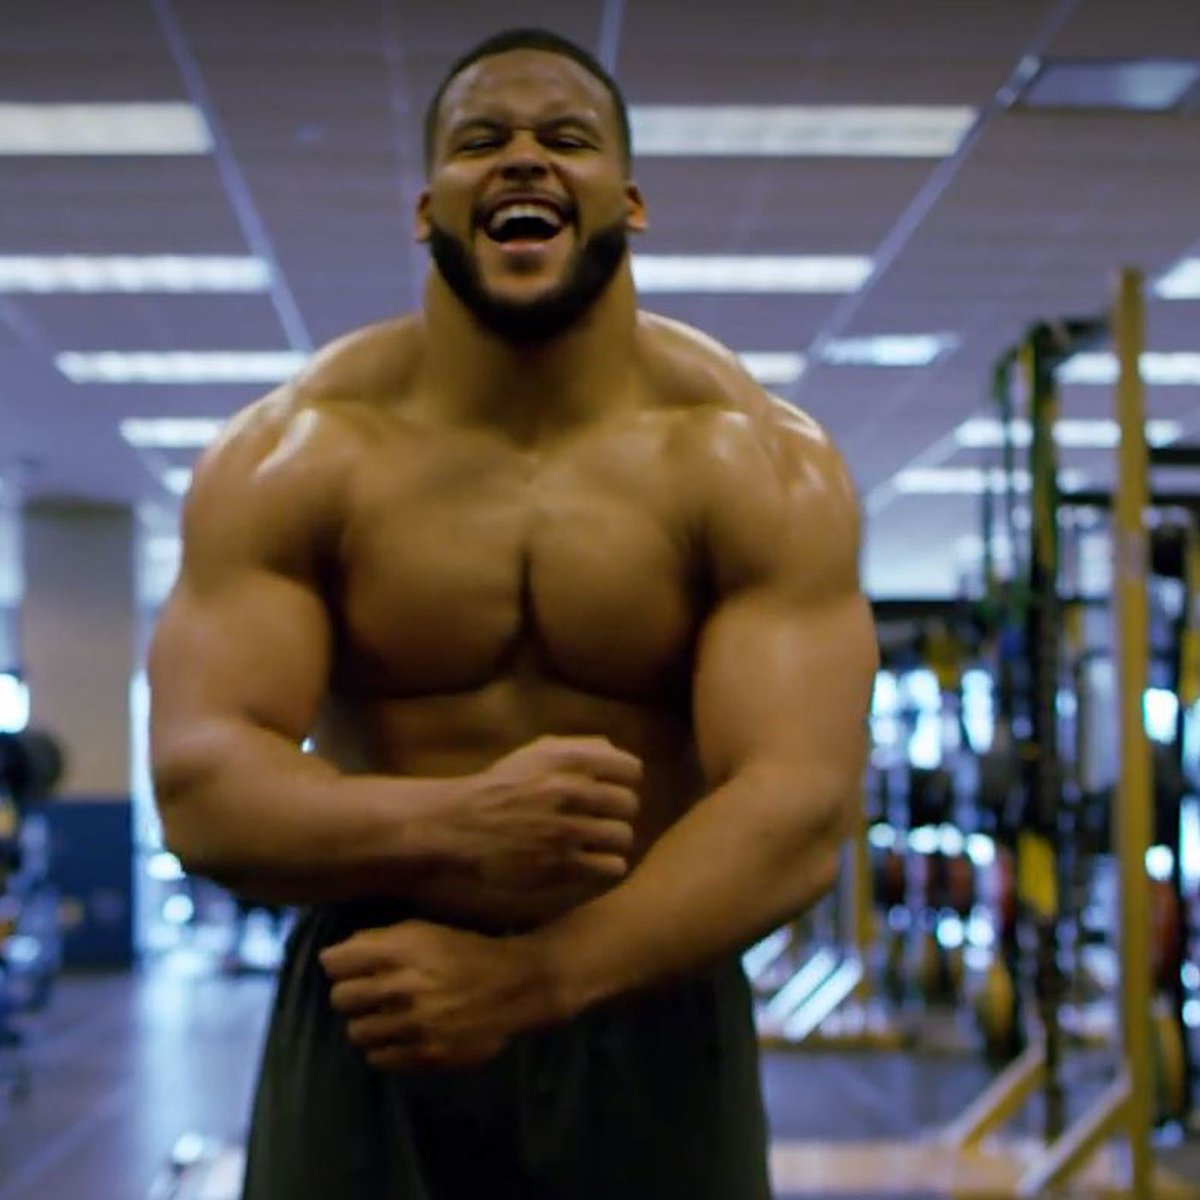 Aaron Donald Body